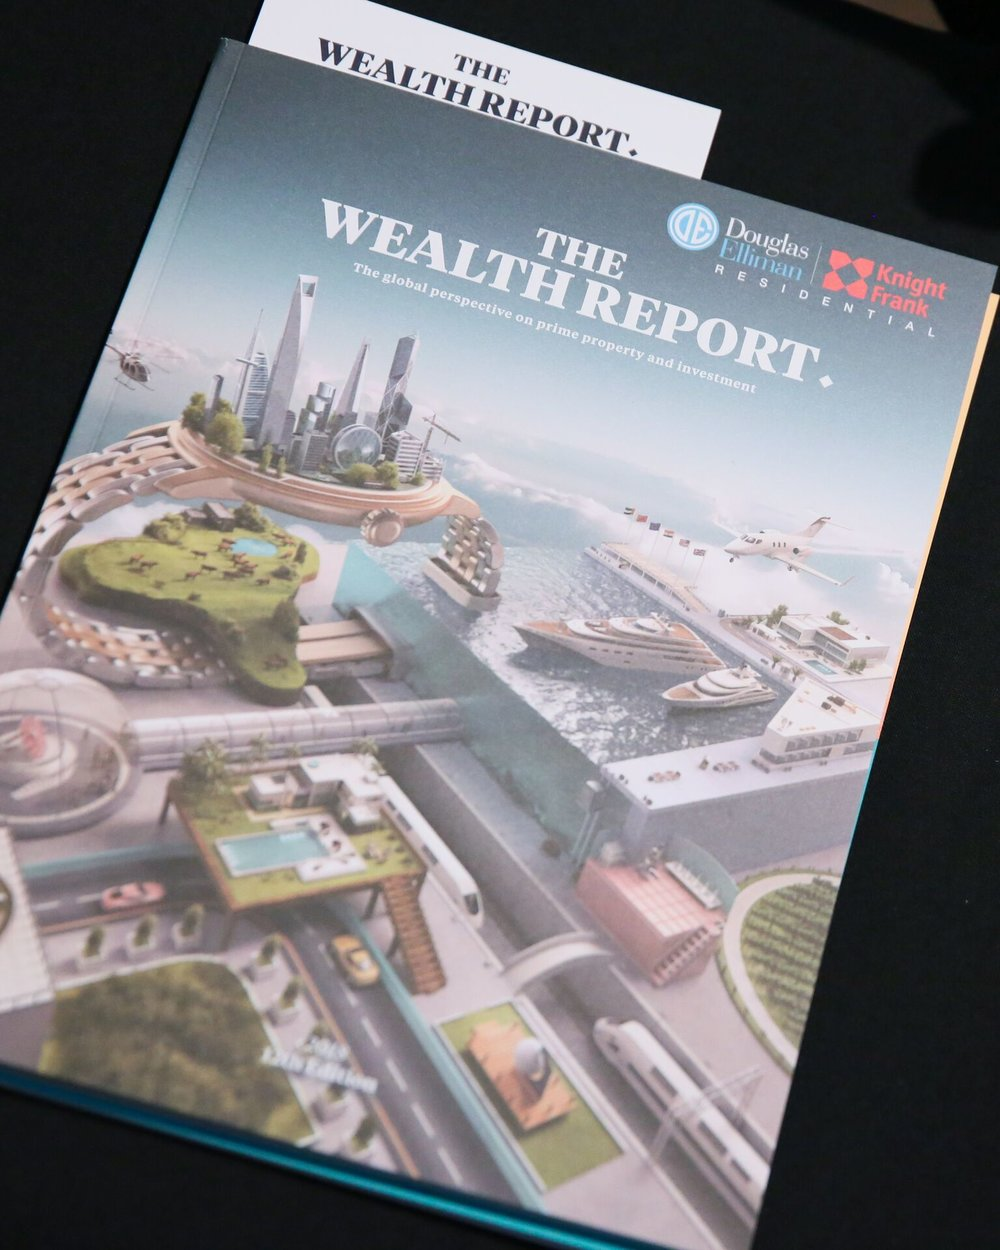 2018 Wealth Report